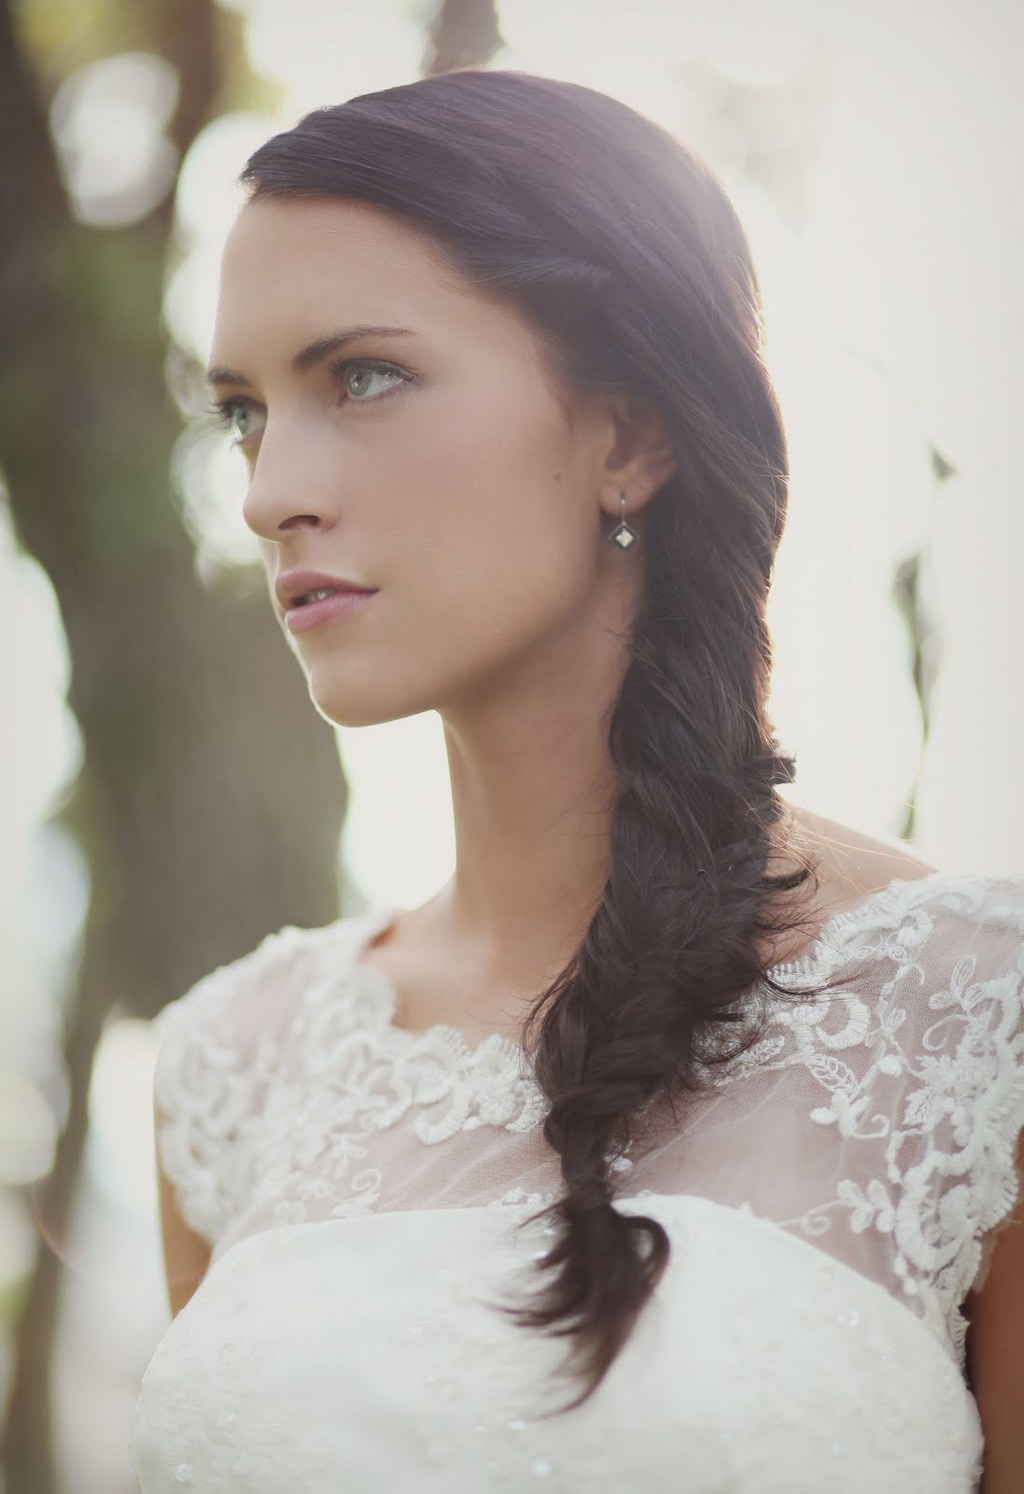 Enjoyable Bohemian Brides Loose Braid Wedding Hairstyle Hairstyles For Women Draintrainus